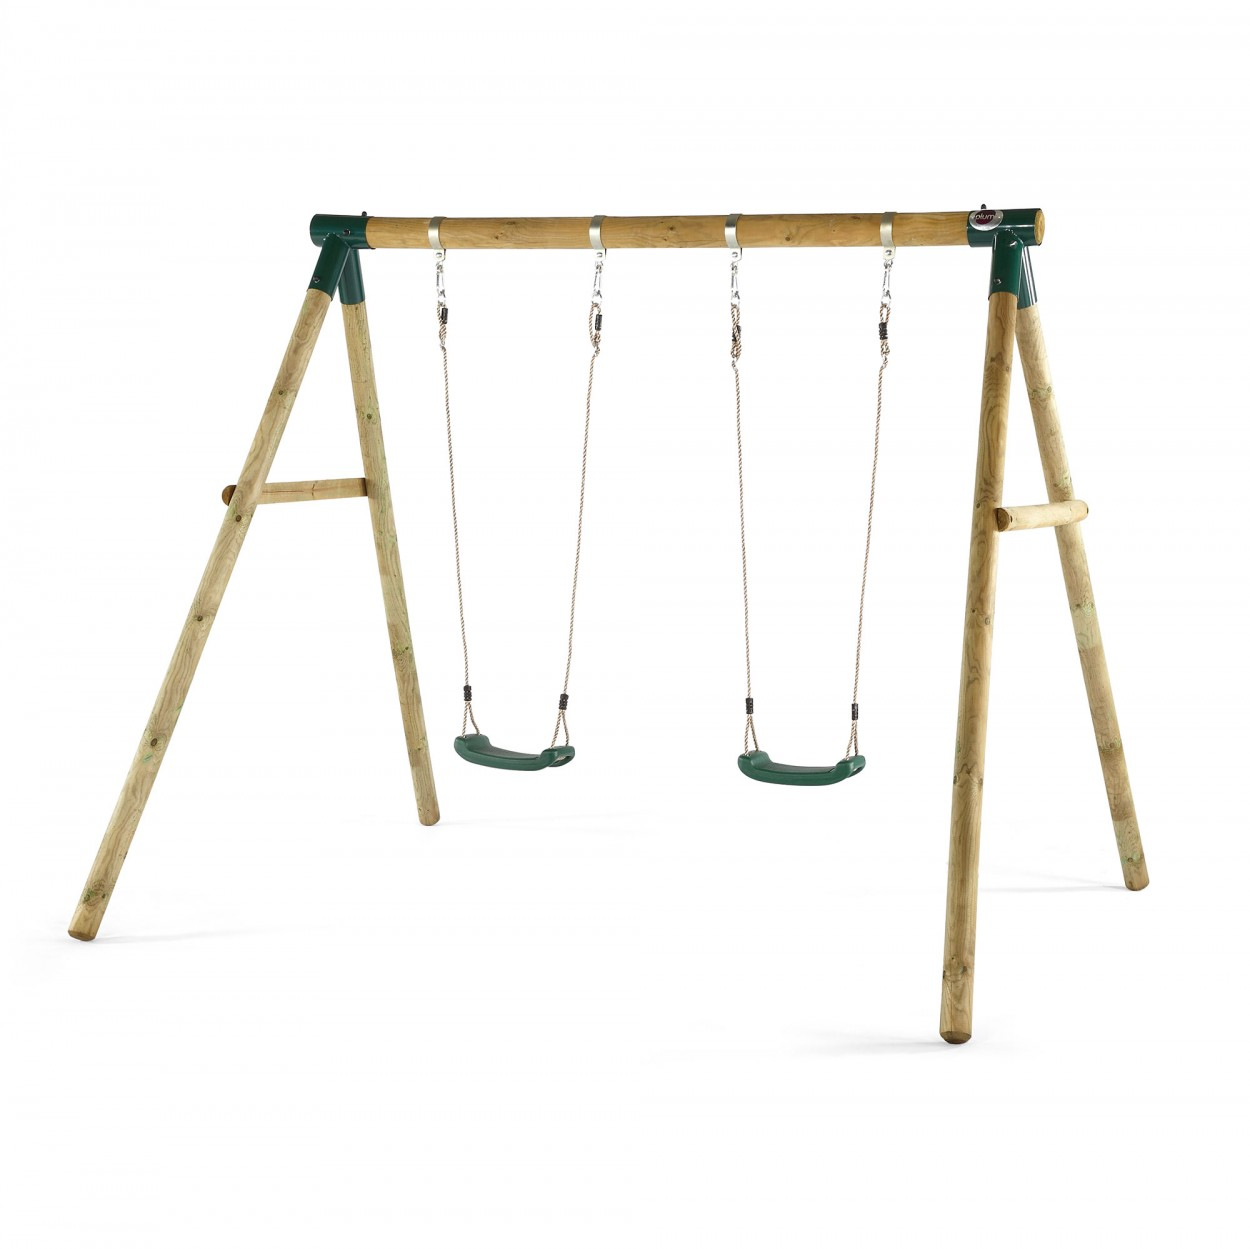 Marmoset wooden swing set beautifully natural round pole for Wooden swing set plans